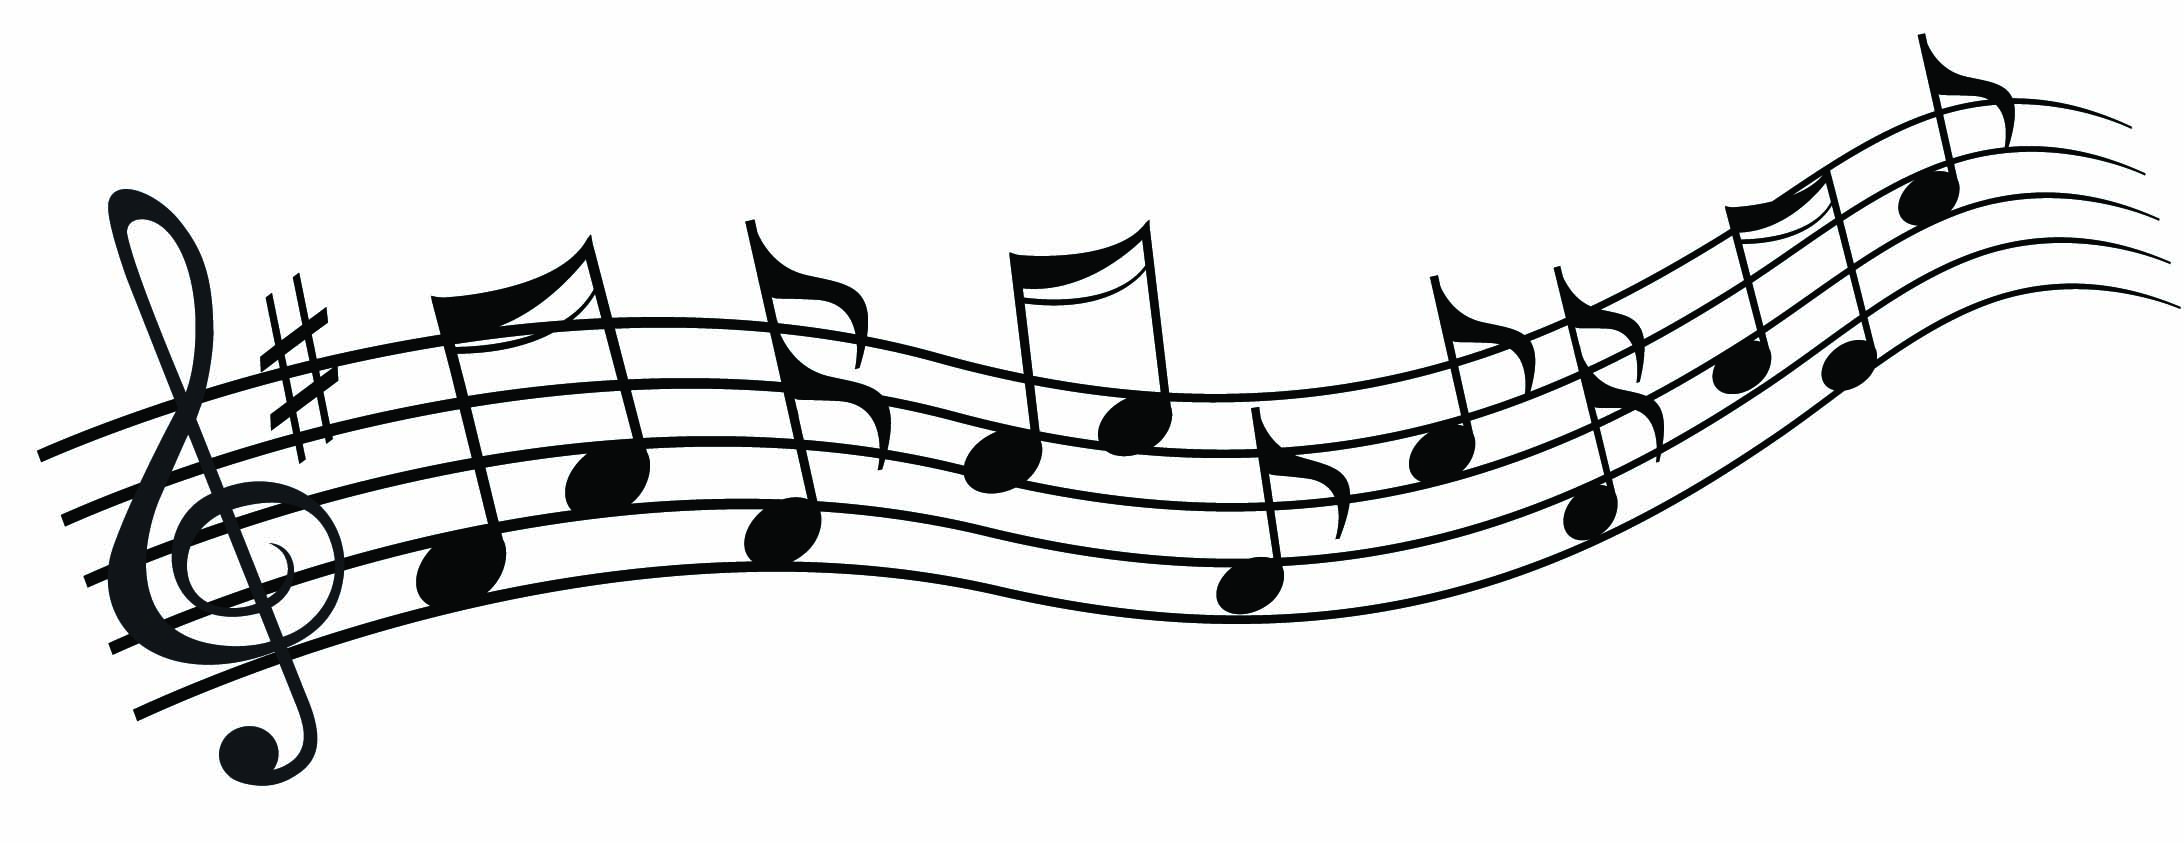 2184x843 Music Clip Art For Kids Free Clipart Images